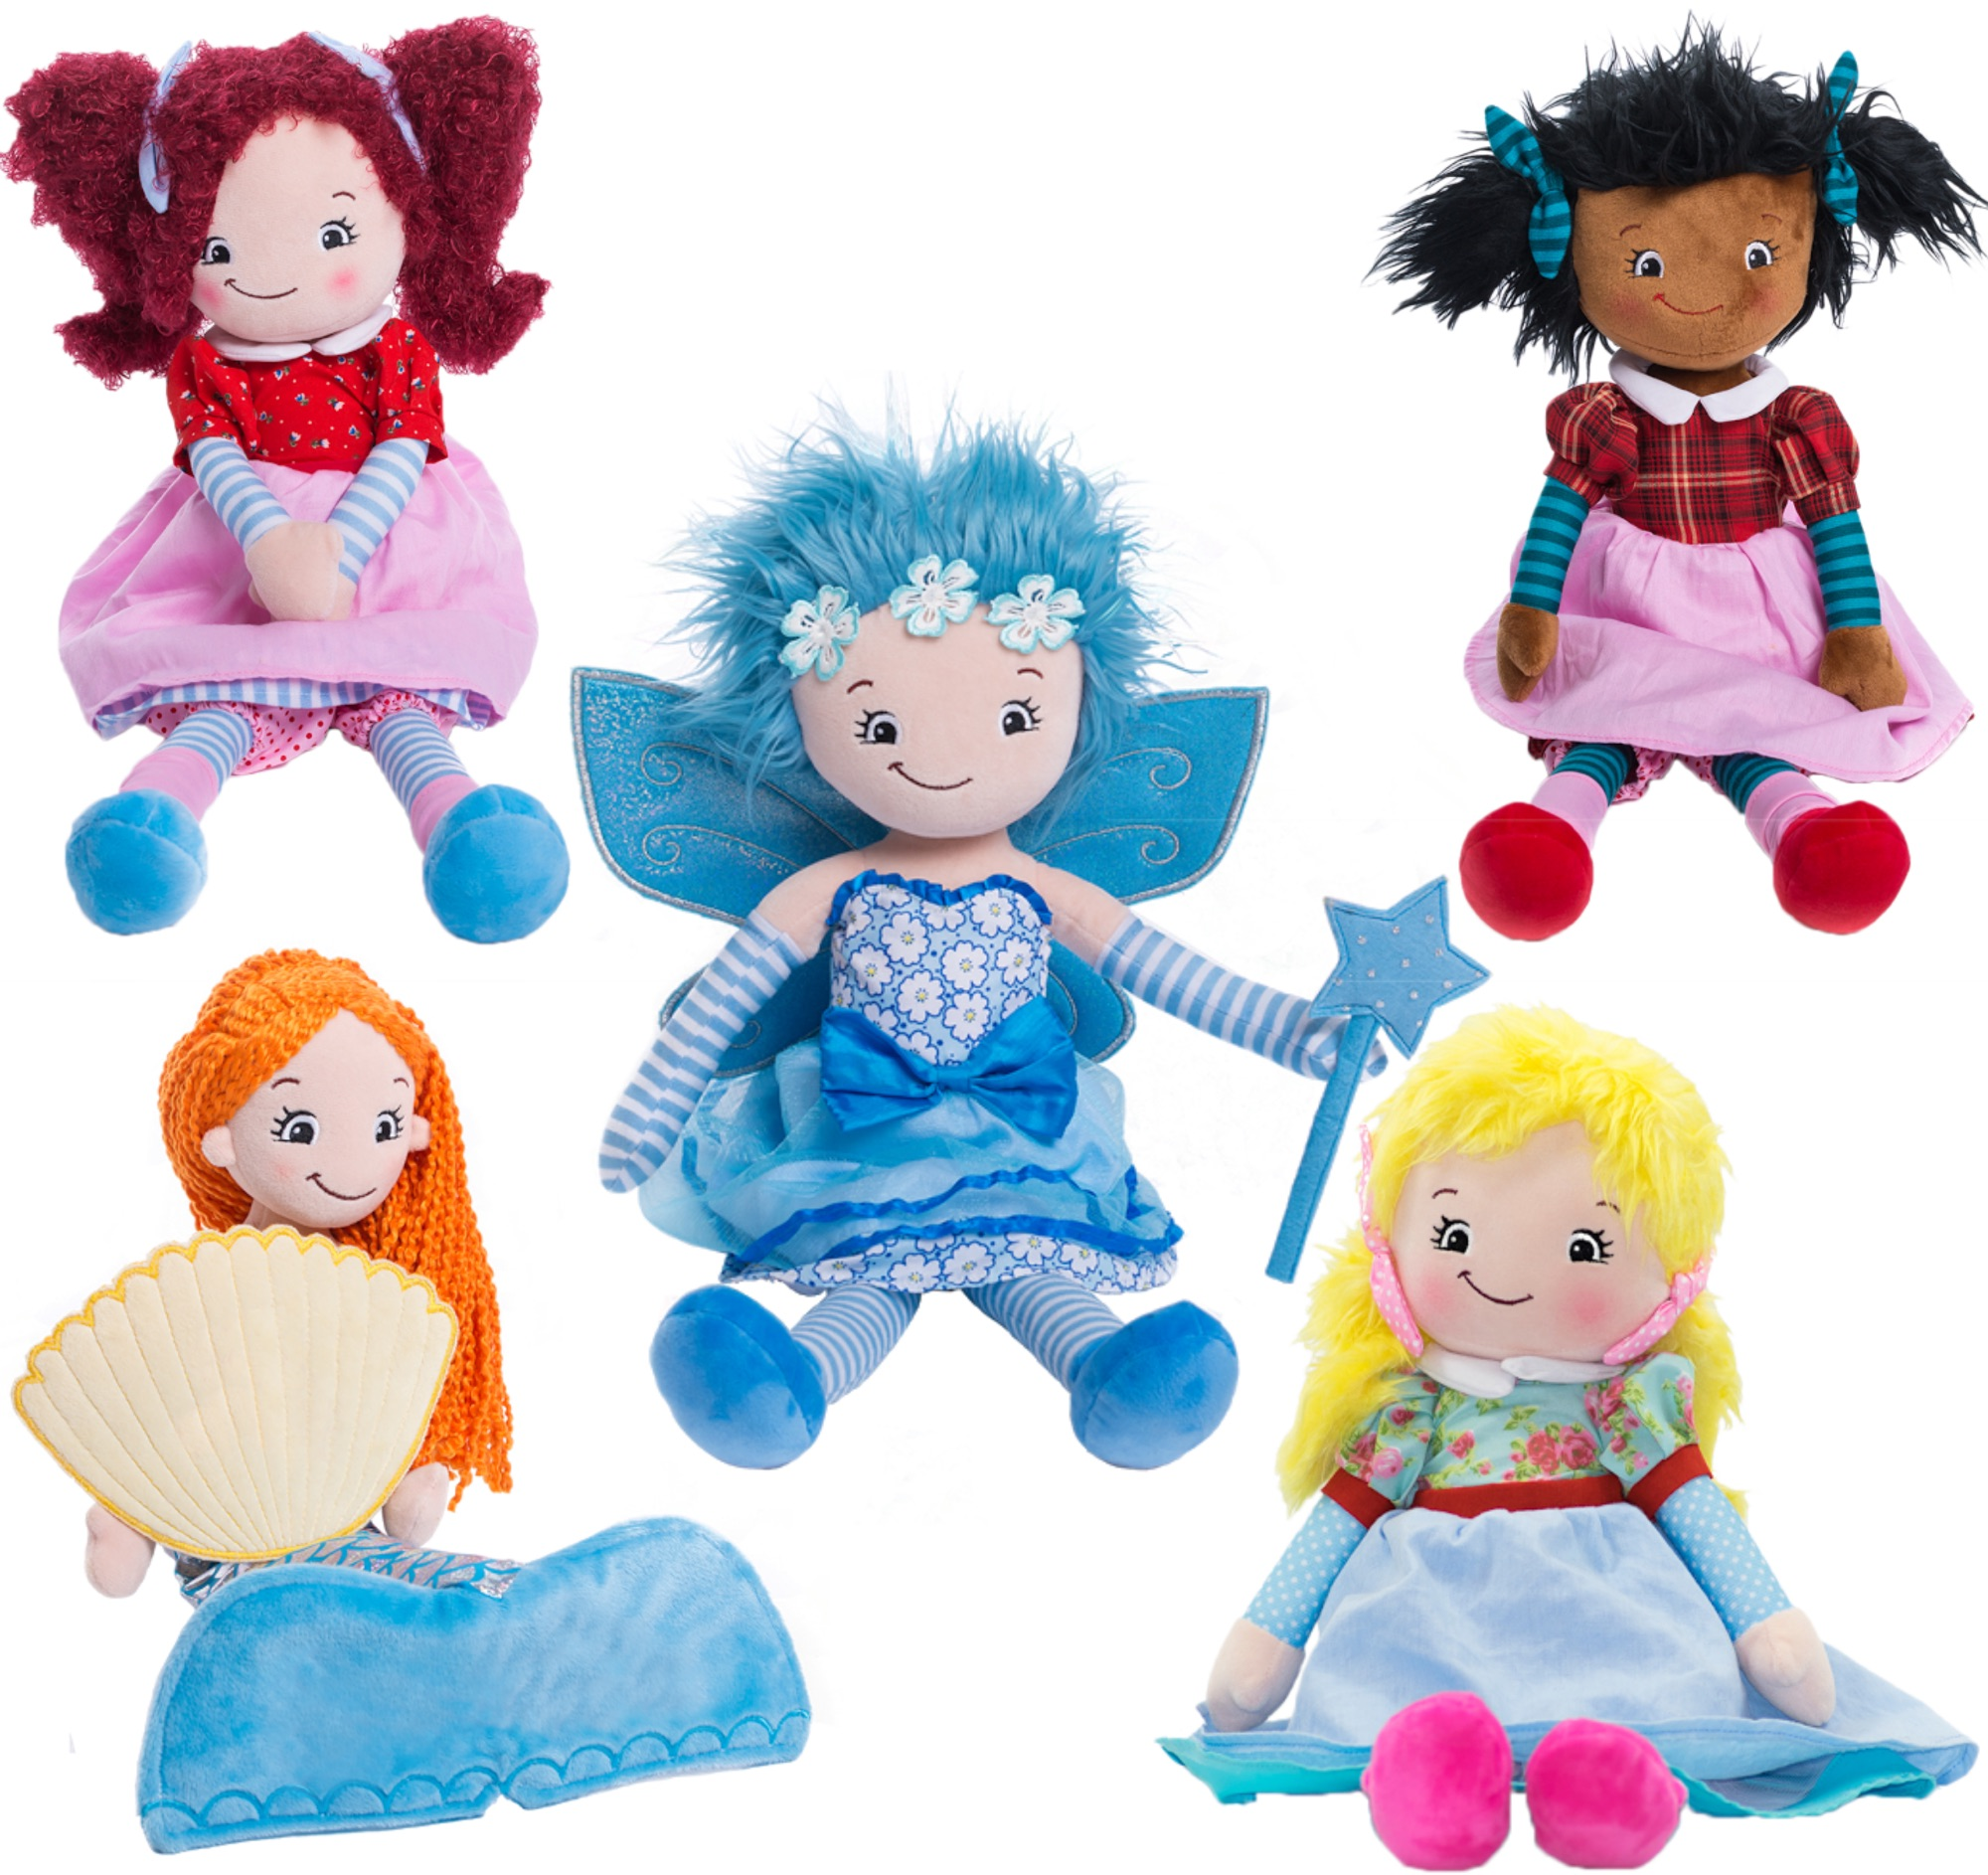 Personalised Embroidered Rag Dolls